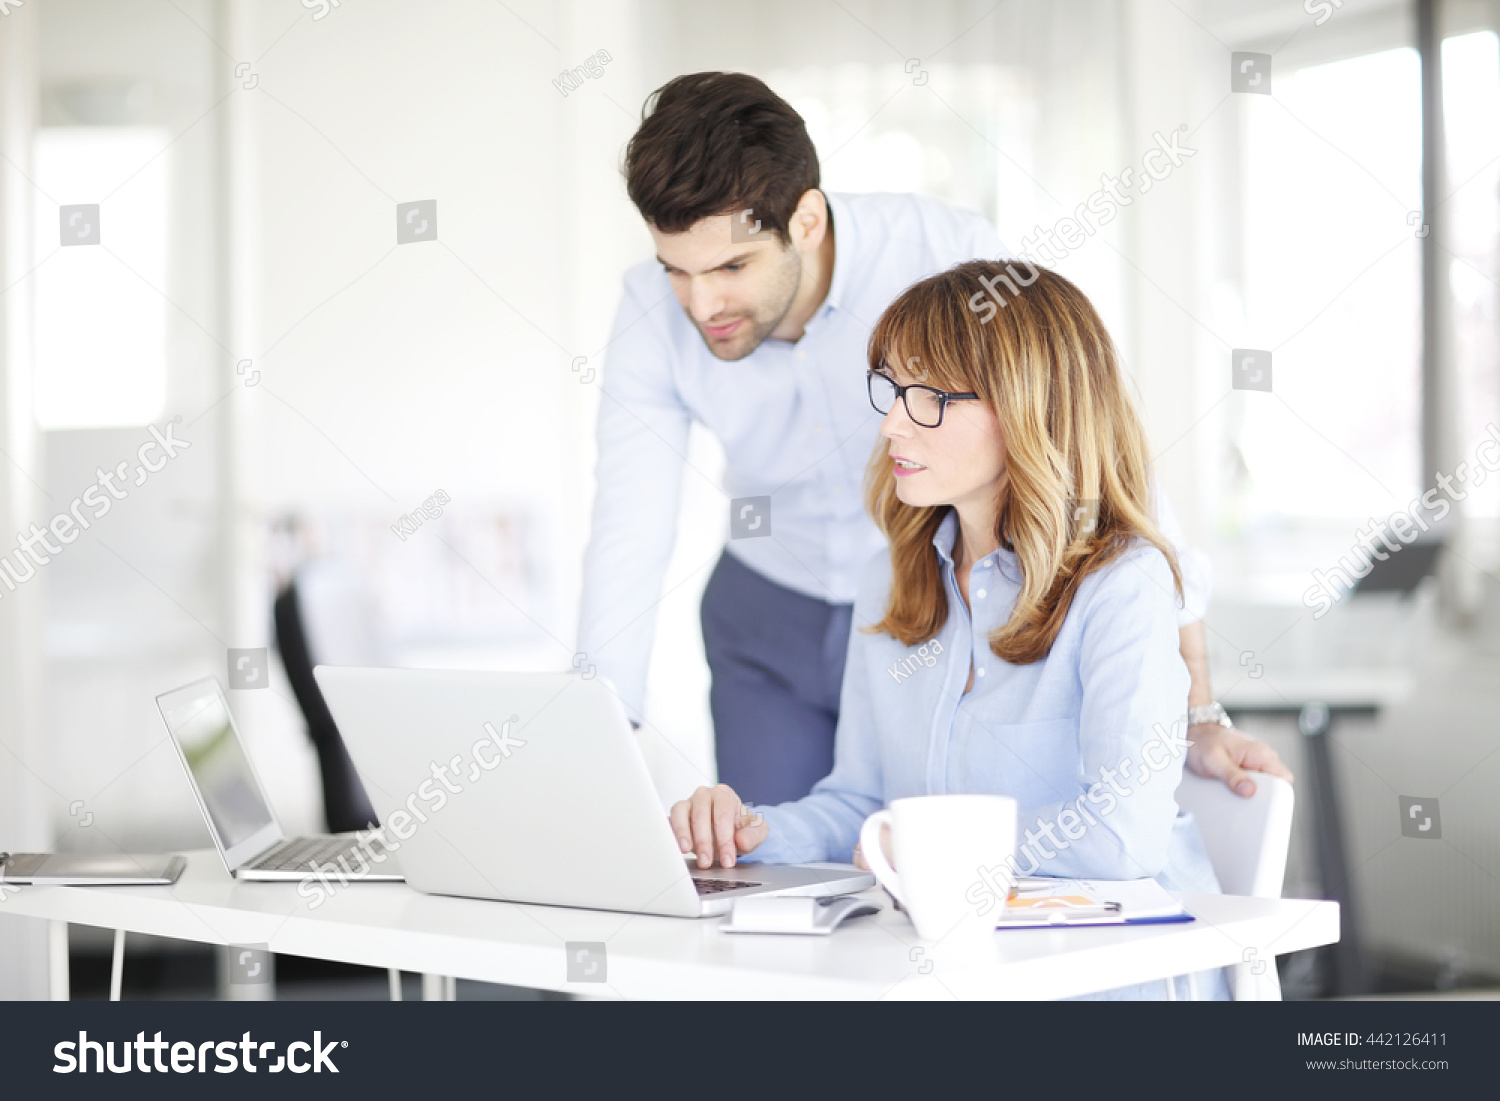 Portrait Middle Age Investment Advisor Her Stock Photo